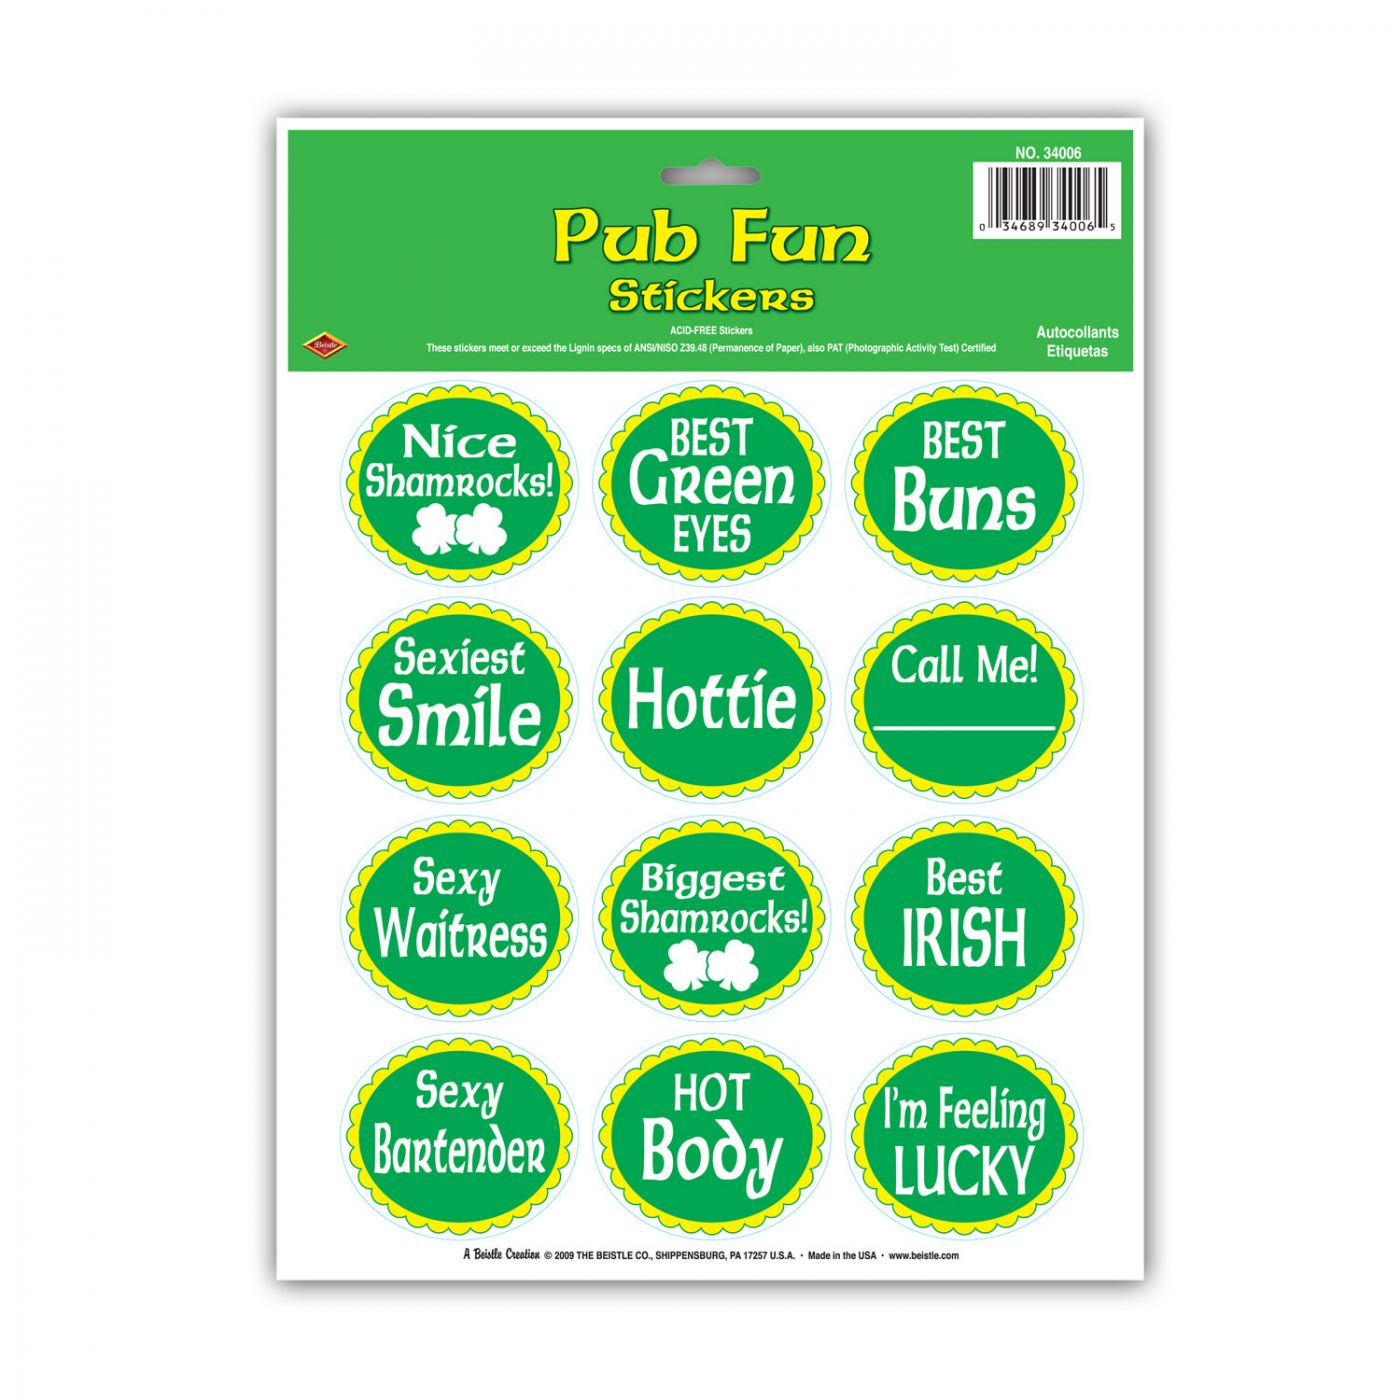 St Patrick Pub Fun Stickers image